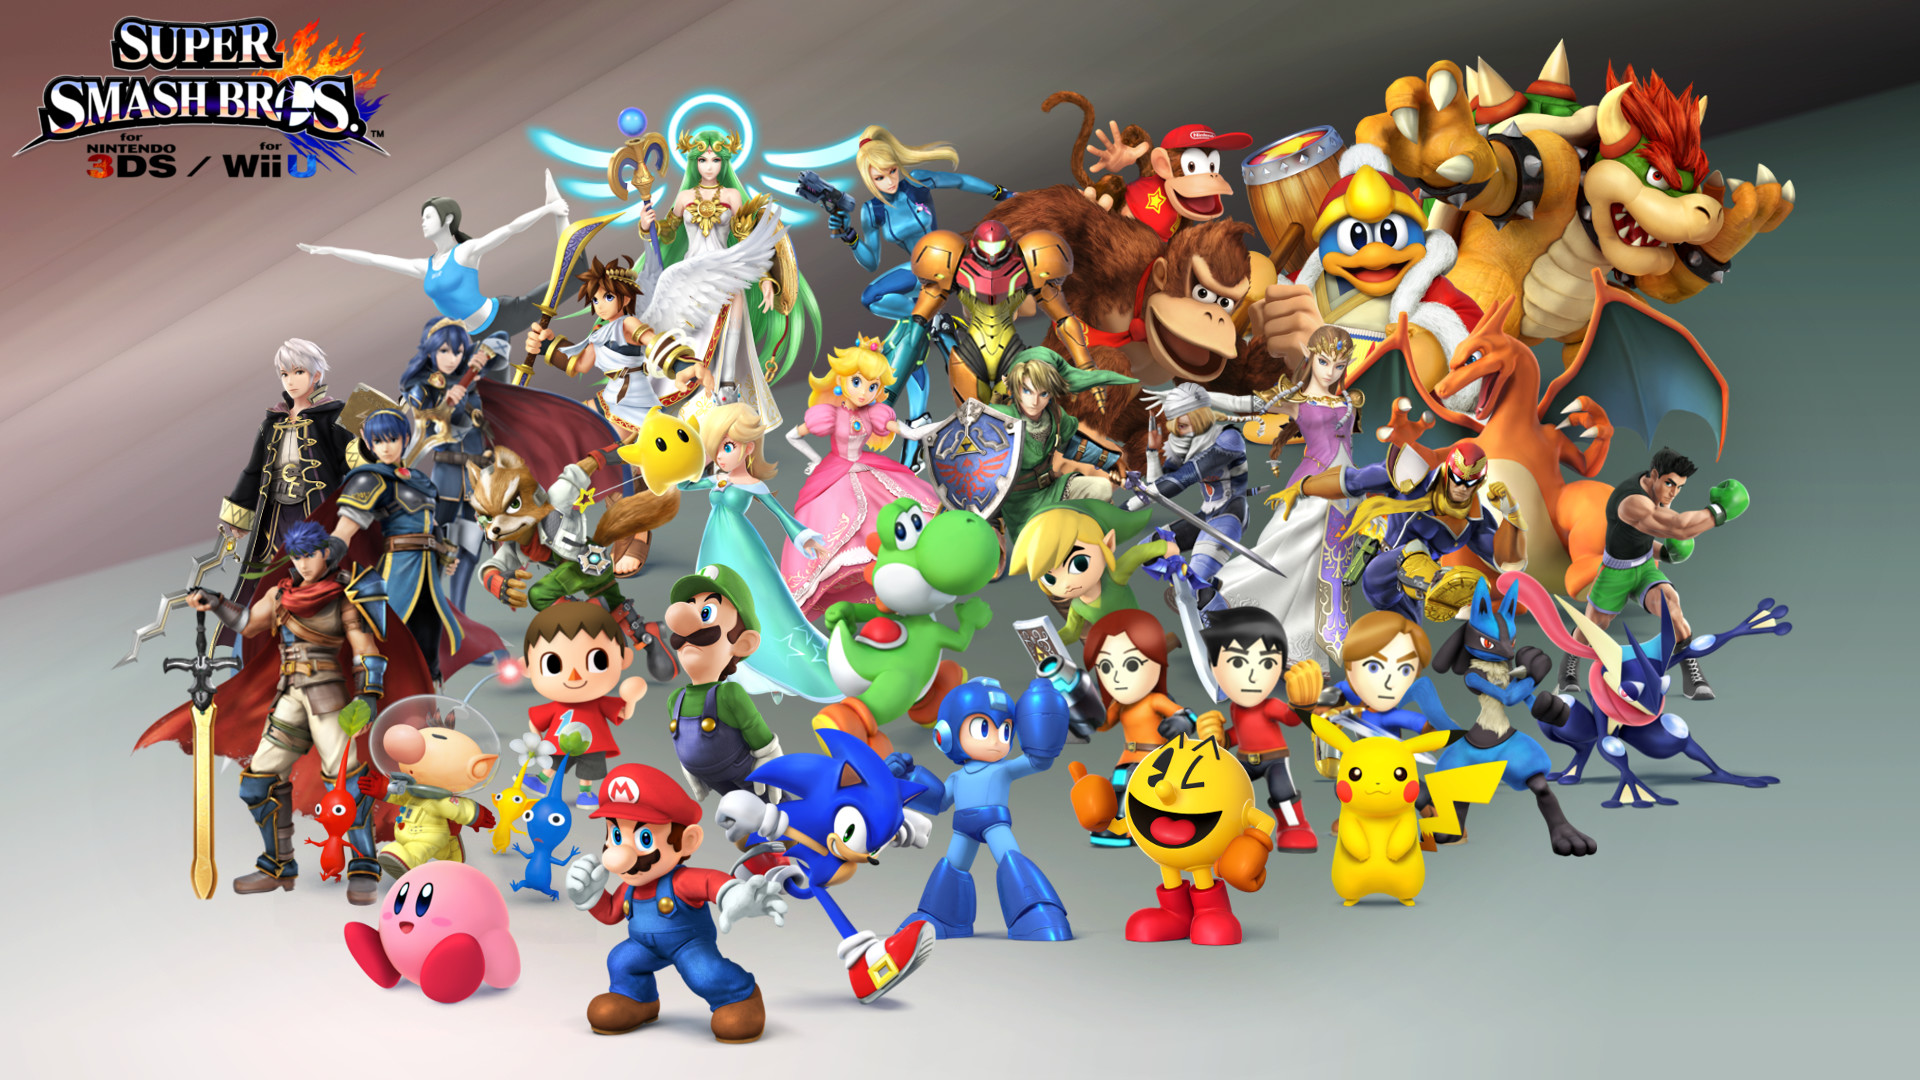 SSB4Made a 1920 x 1080 Smash Bros 4 wallpaper featuring every character  confirmed so far. Will update as the remaining characters are revealed.